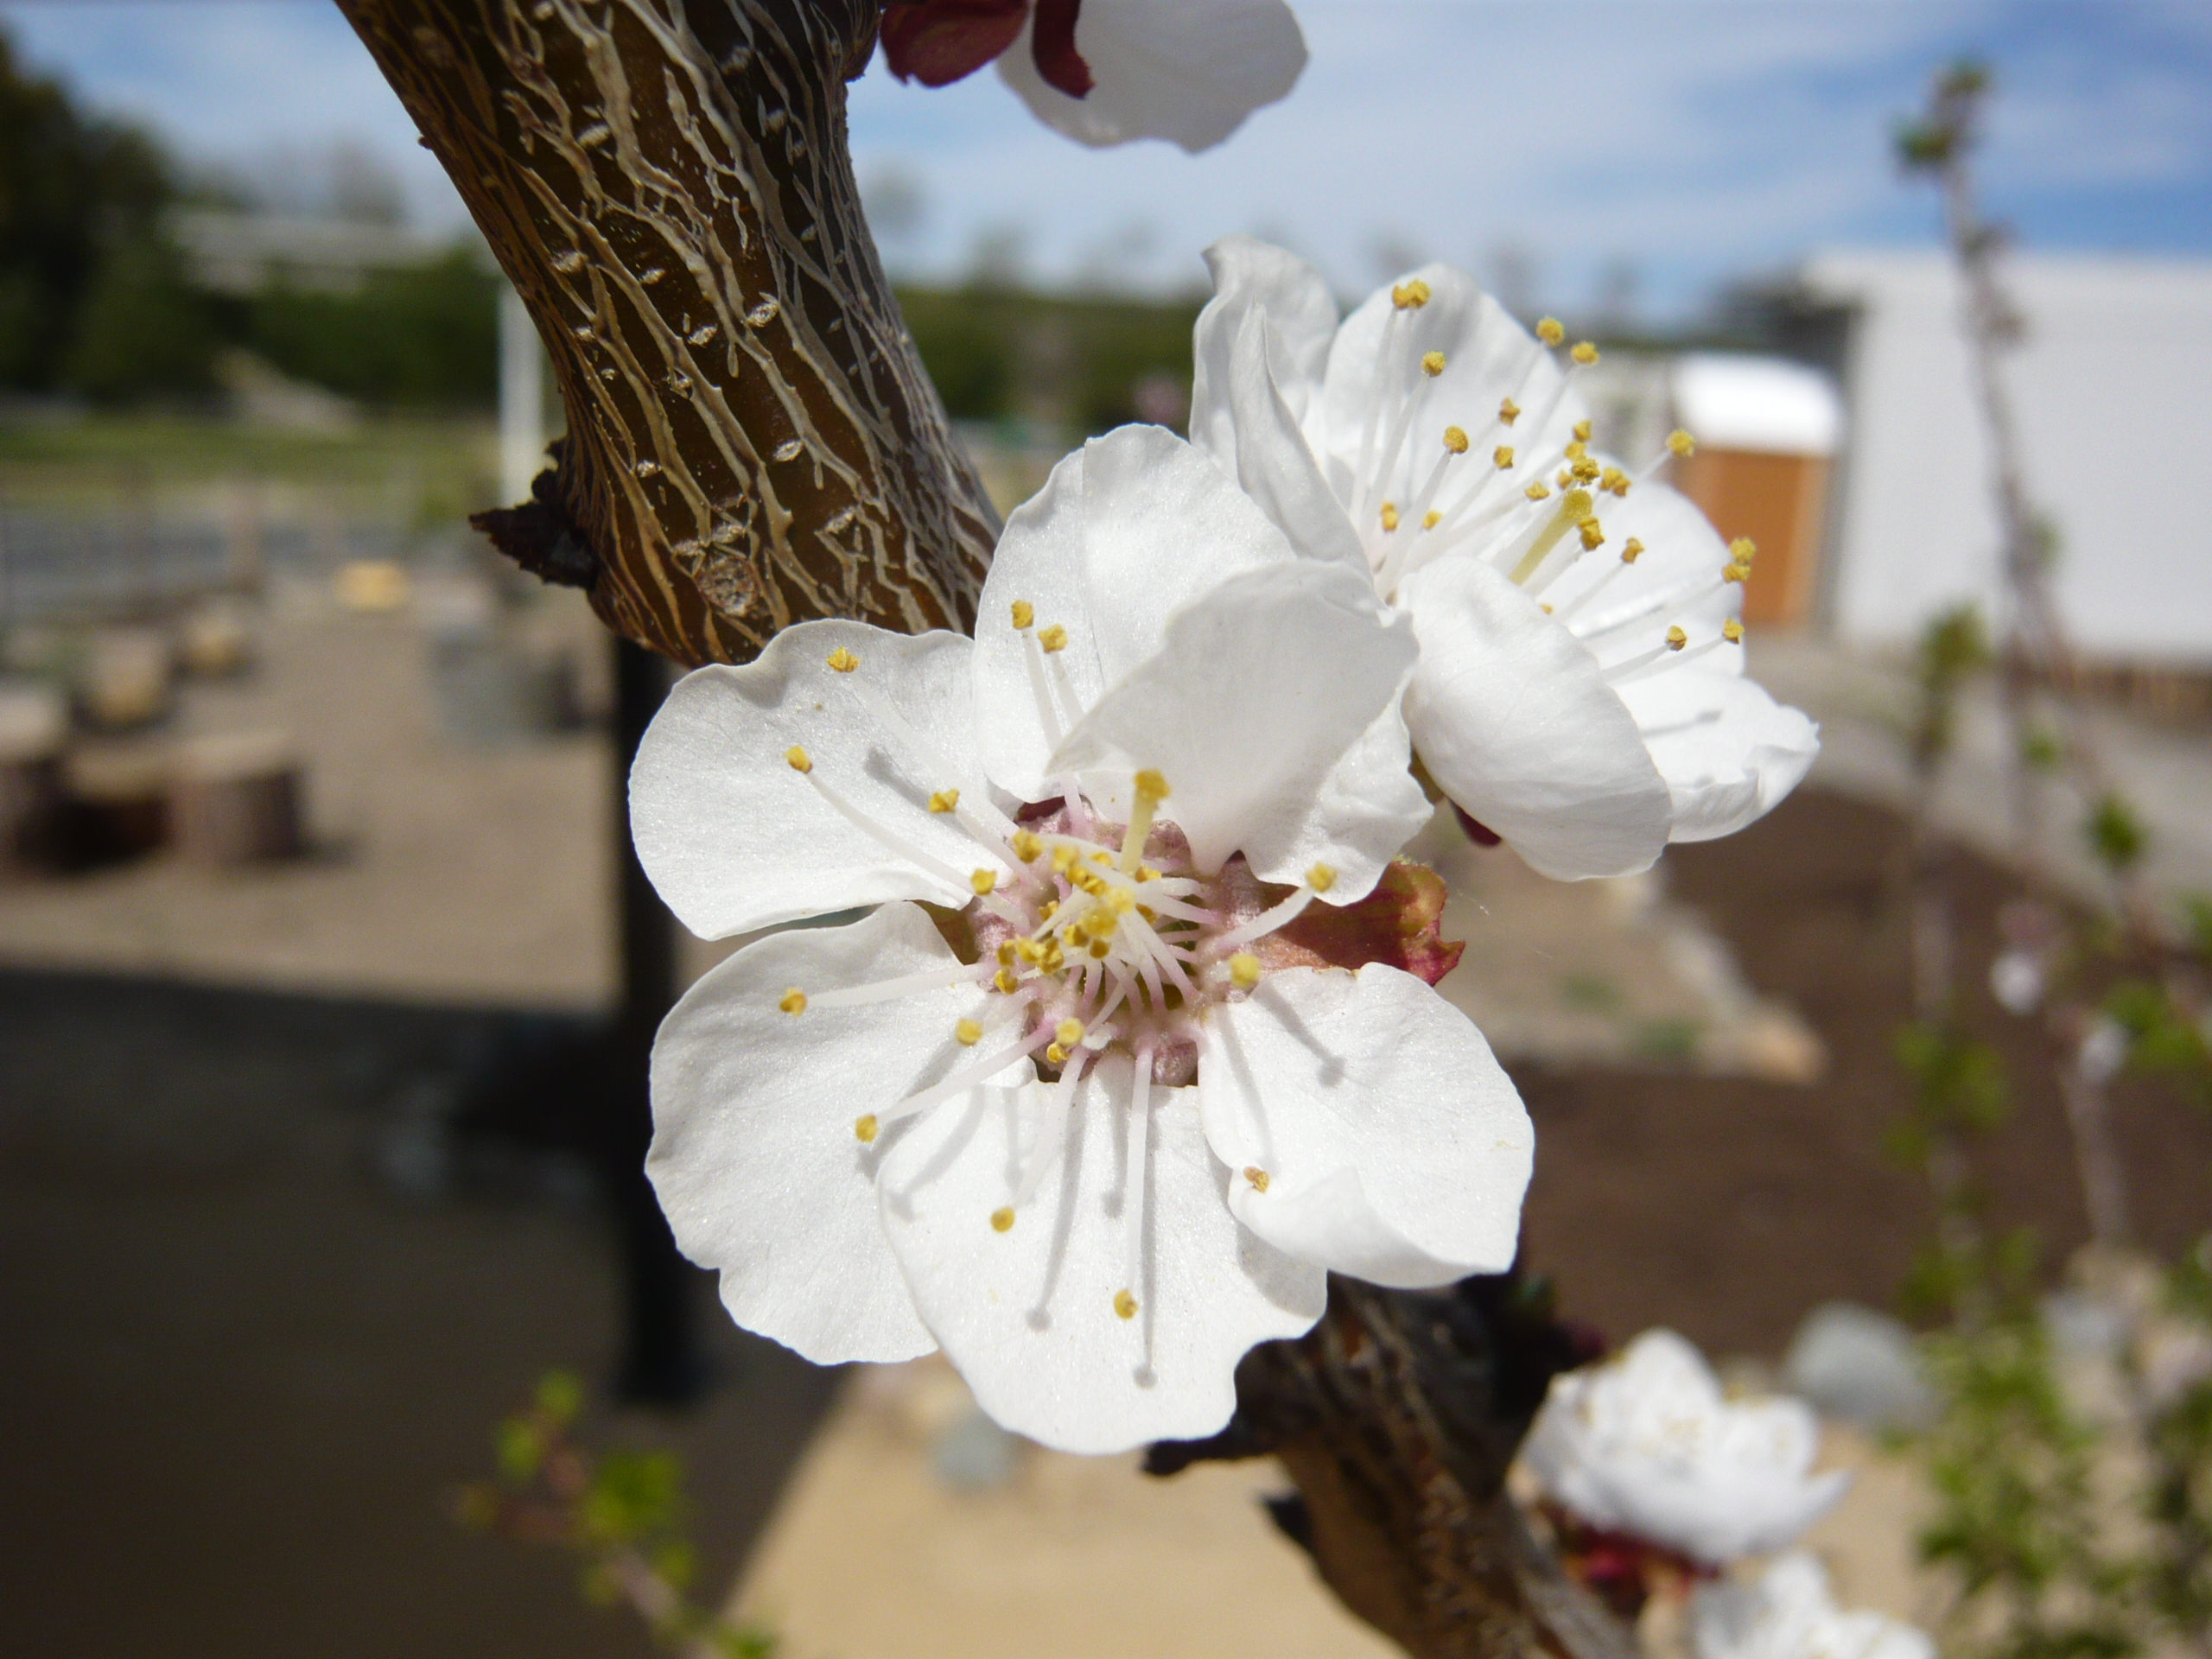 Spring fruit trees blooming in the Green Heart Garden.